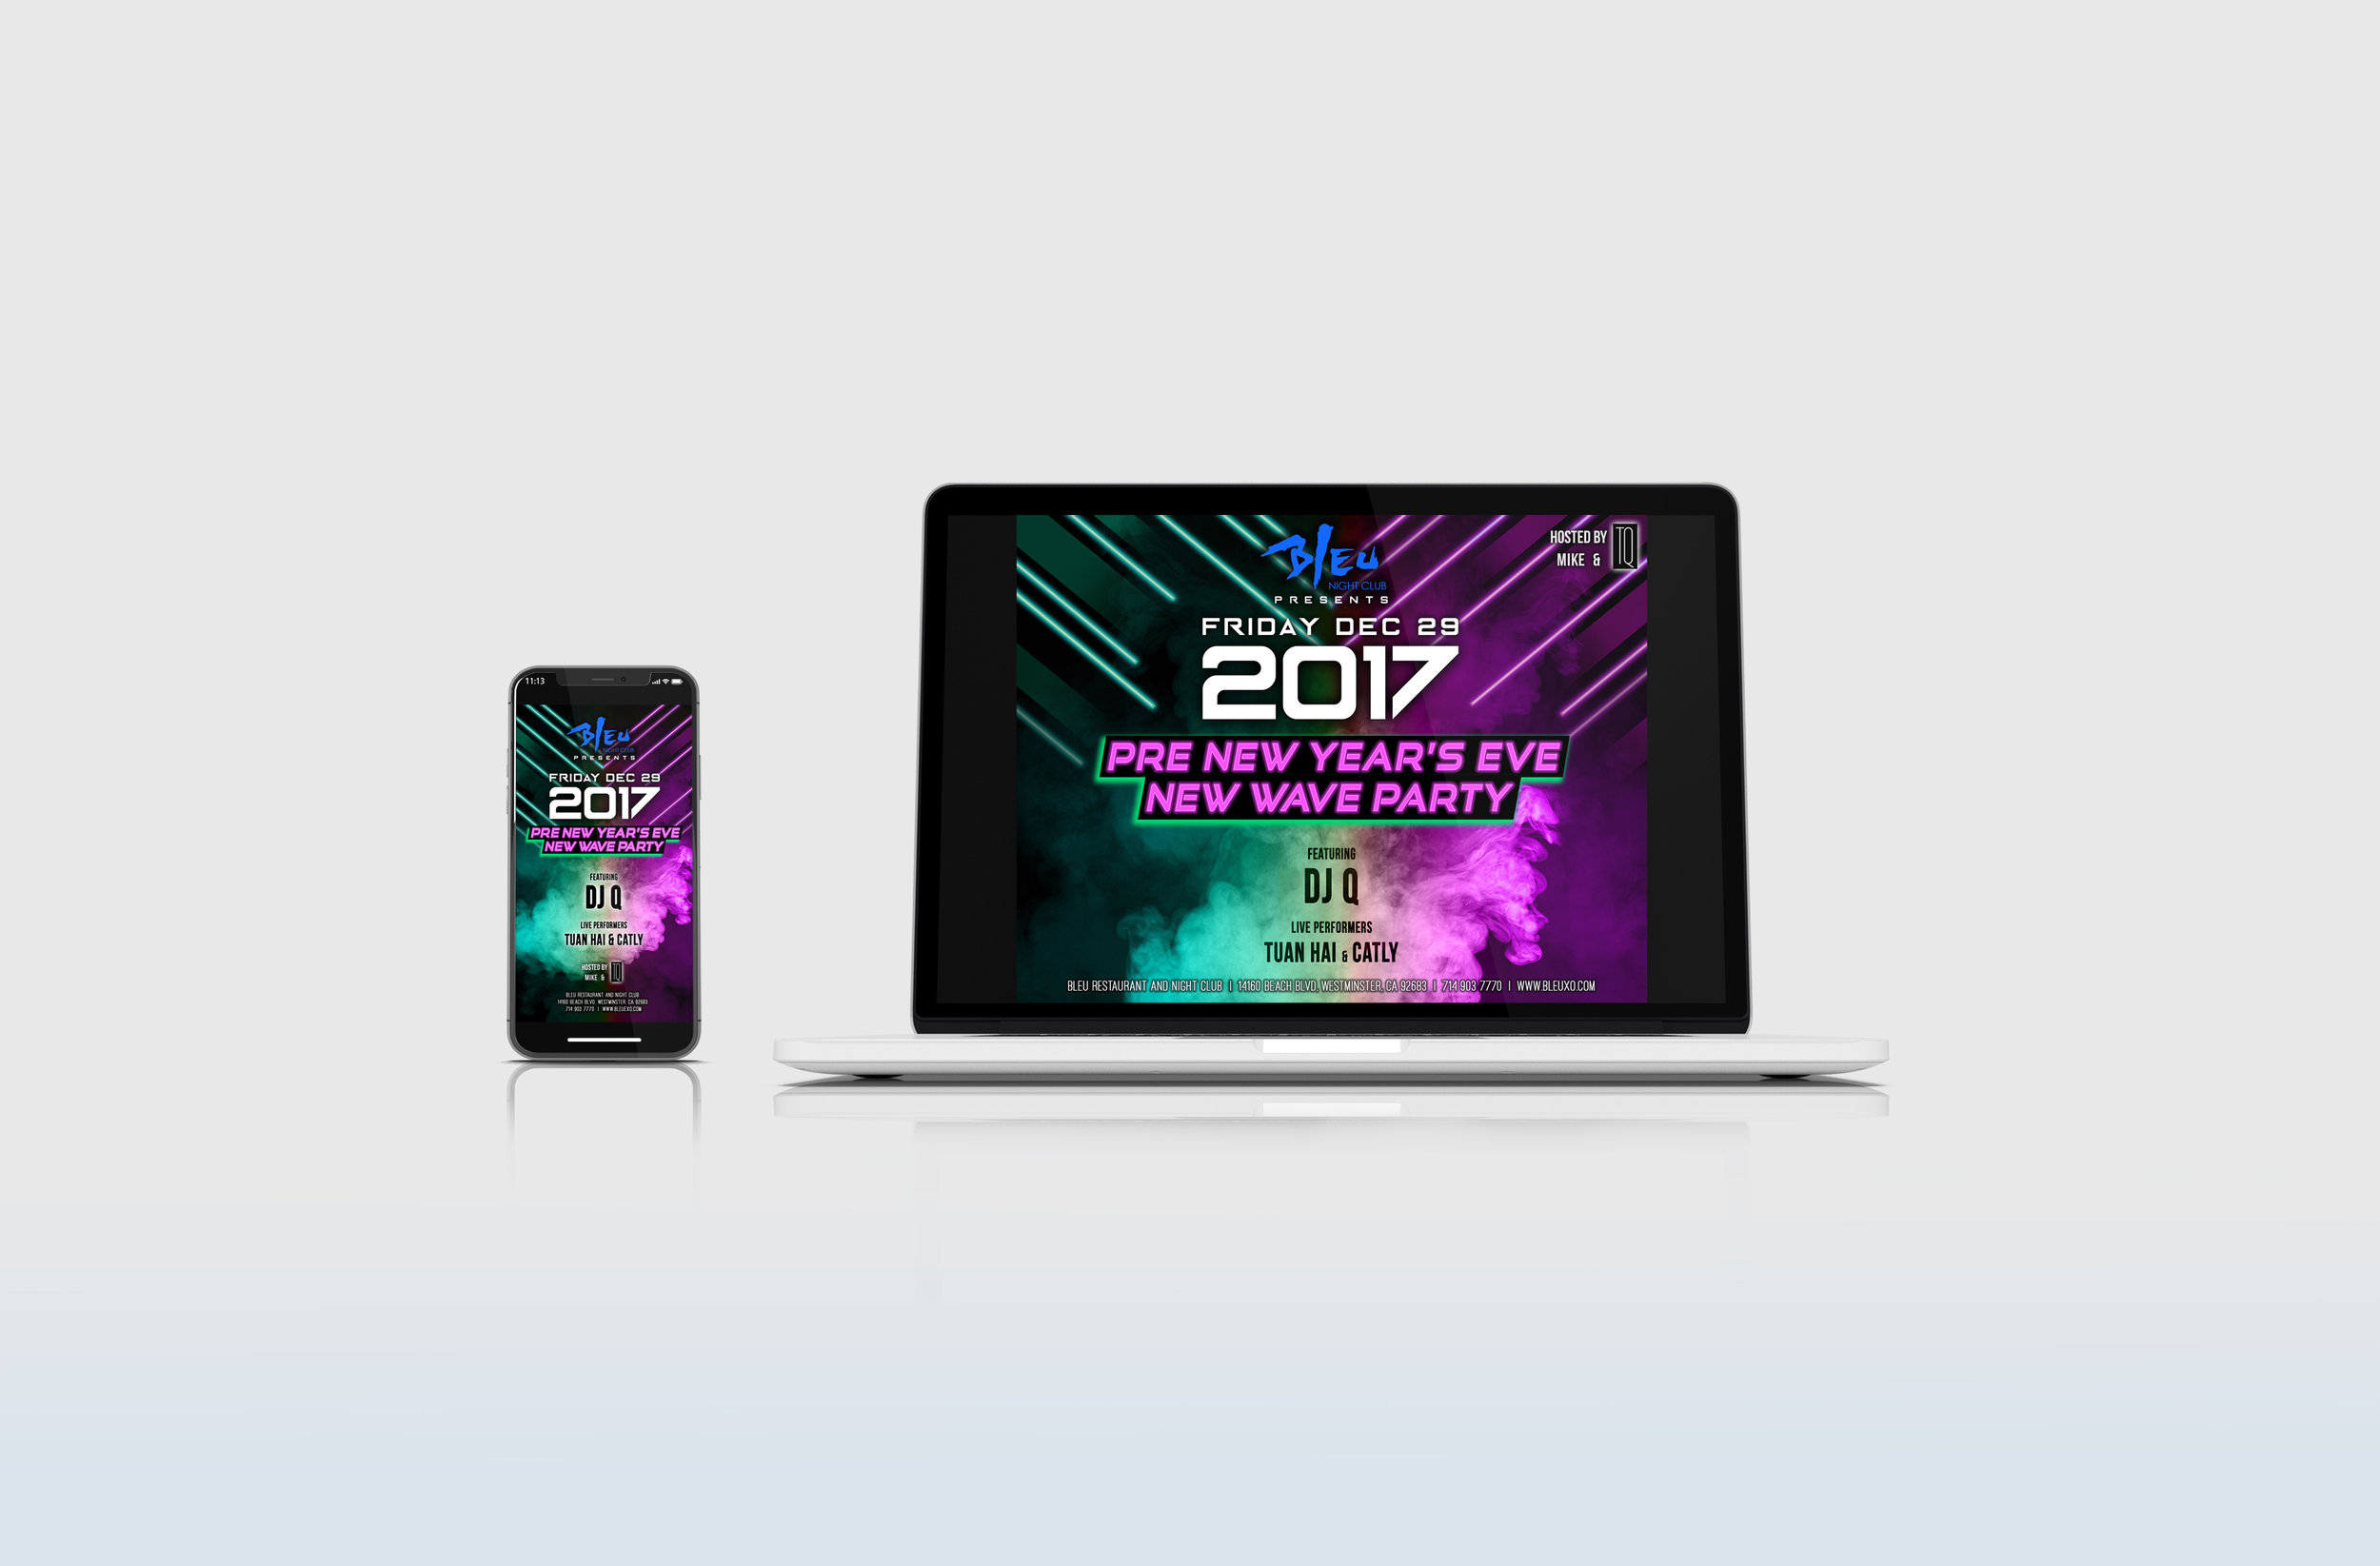 Pre New Year's Party Promotion - Party promotion designed for computer screen, mobile screen, large projection and event tickets.